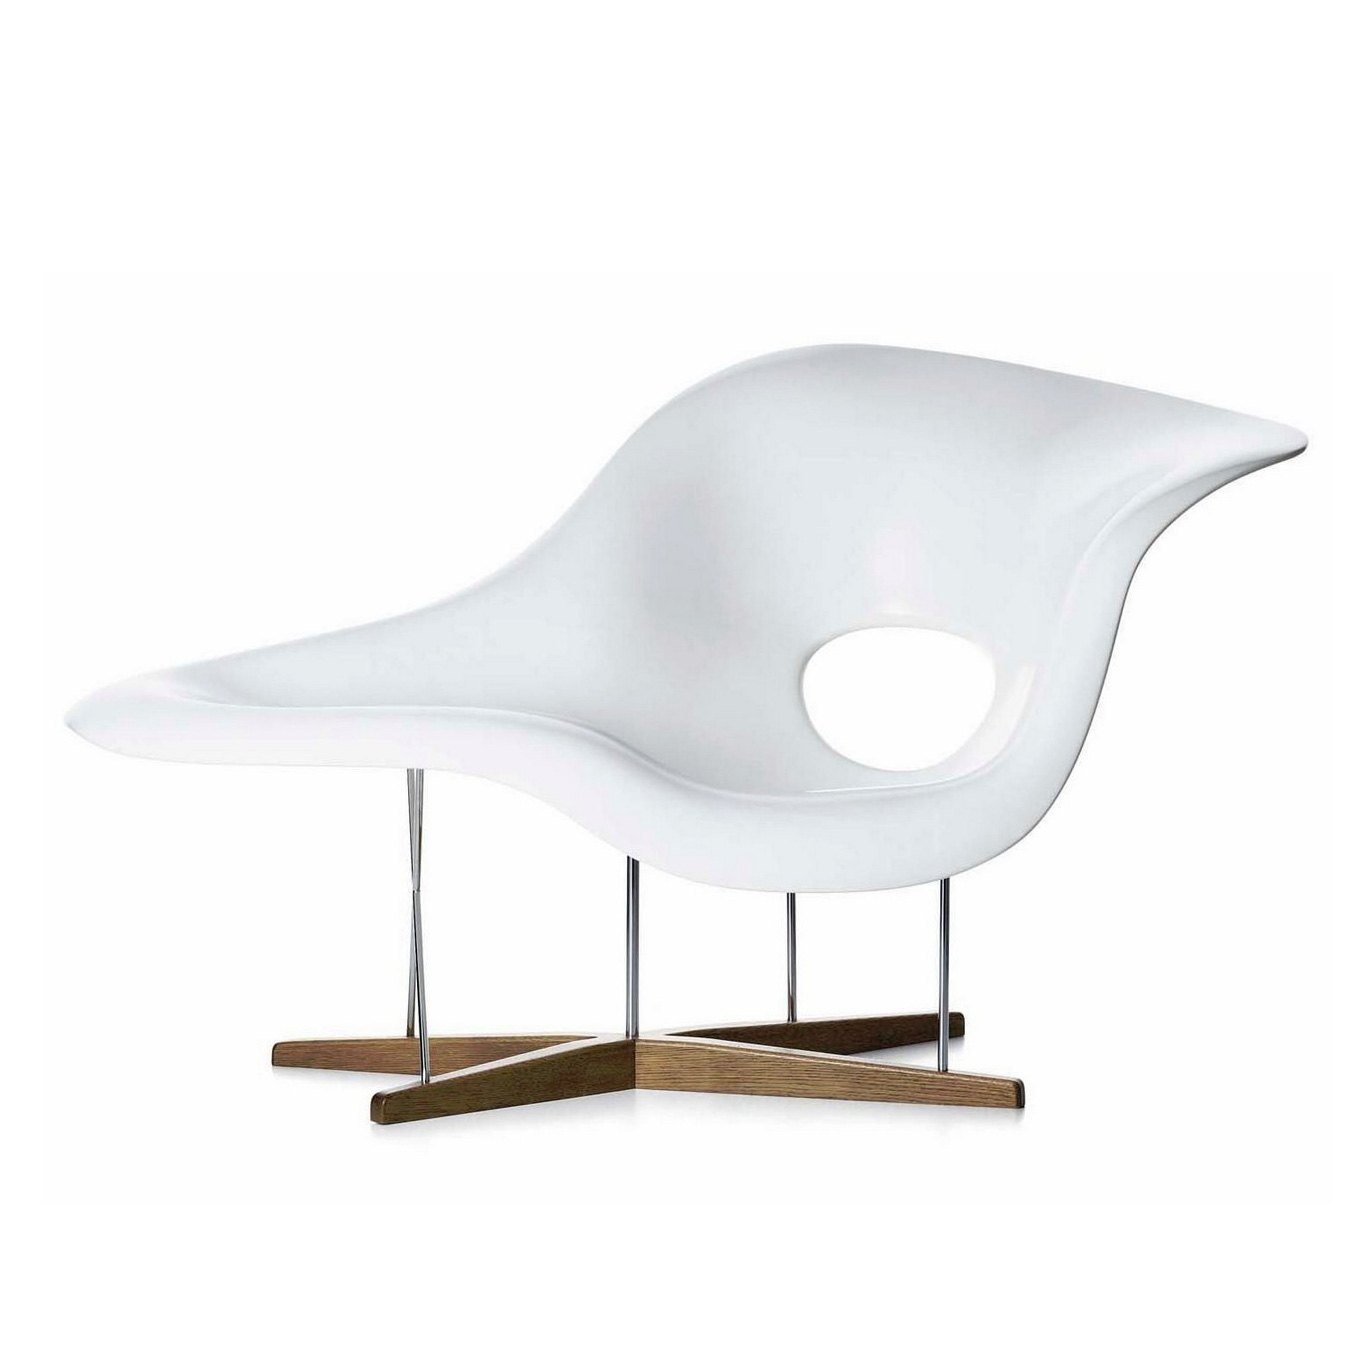 Charles eames chaise longue bauhaus chaiselongue for Charles eames chaise a bascule